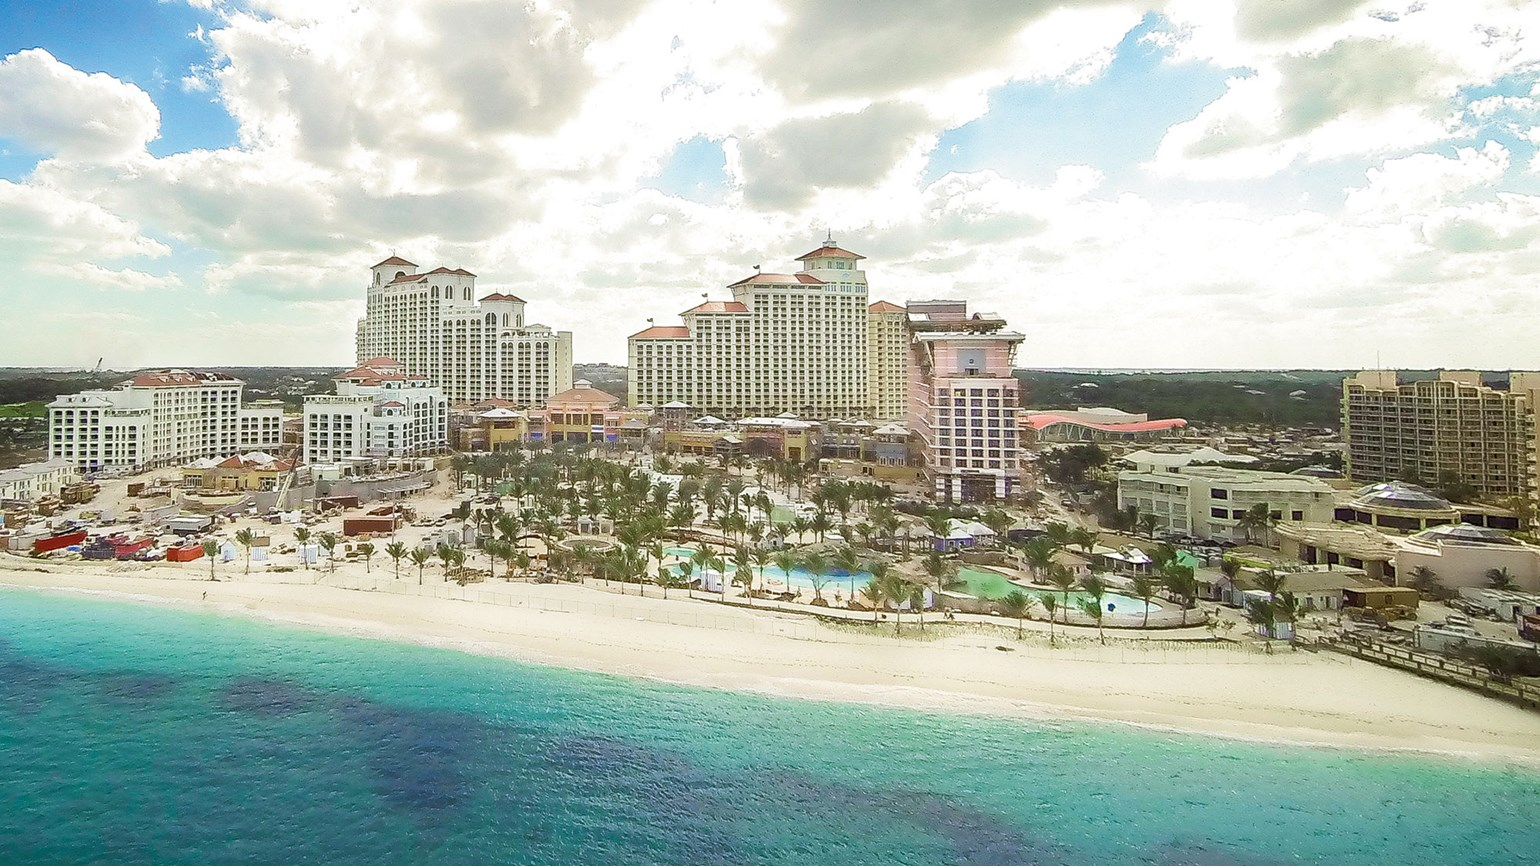 Baha Mar's new owner is affiliate of project's primary lender